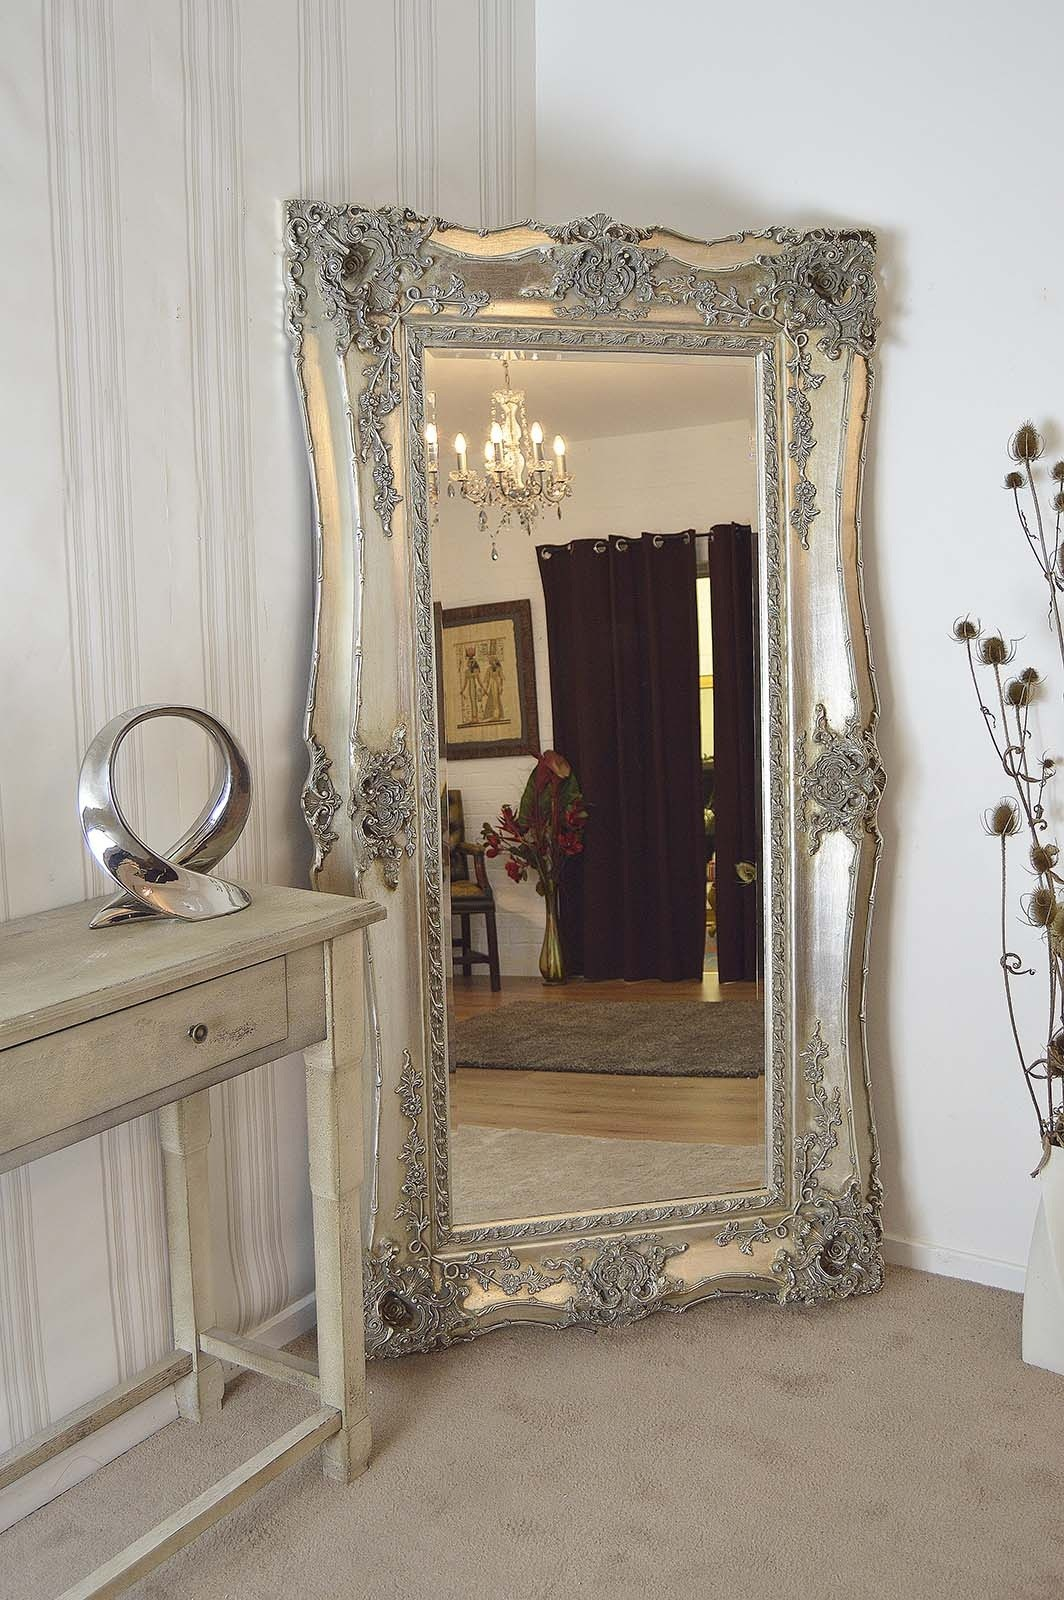 Classy floor length mirrors ornate ornament mirror frame can be place at your beautiful bedroom Ideas